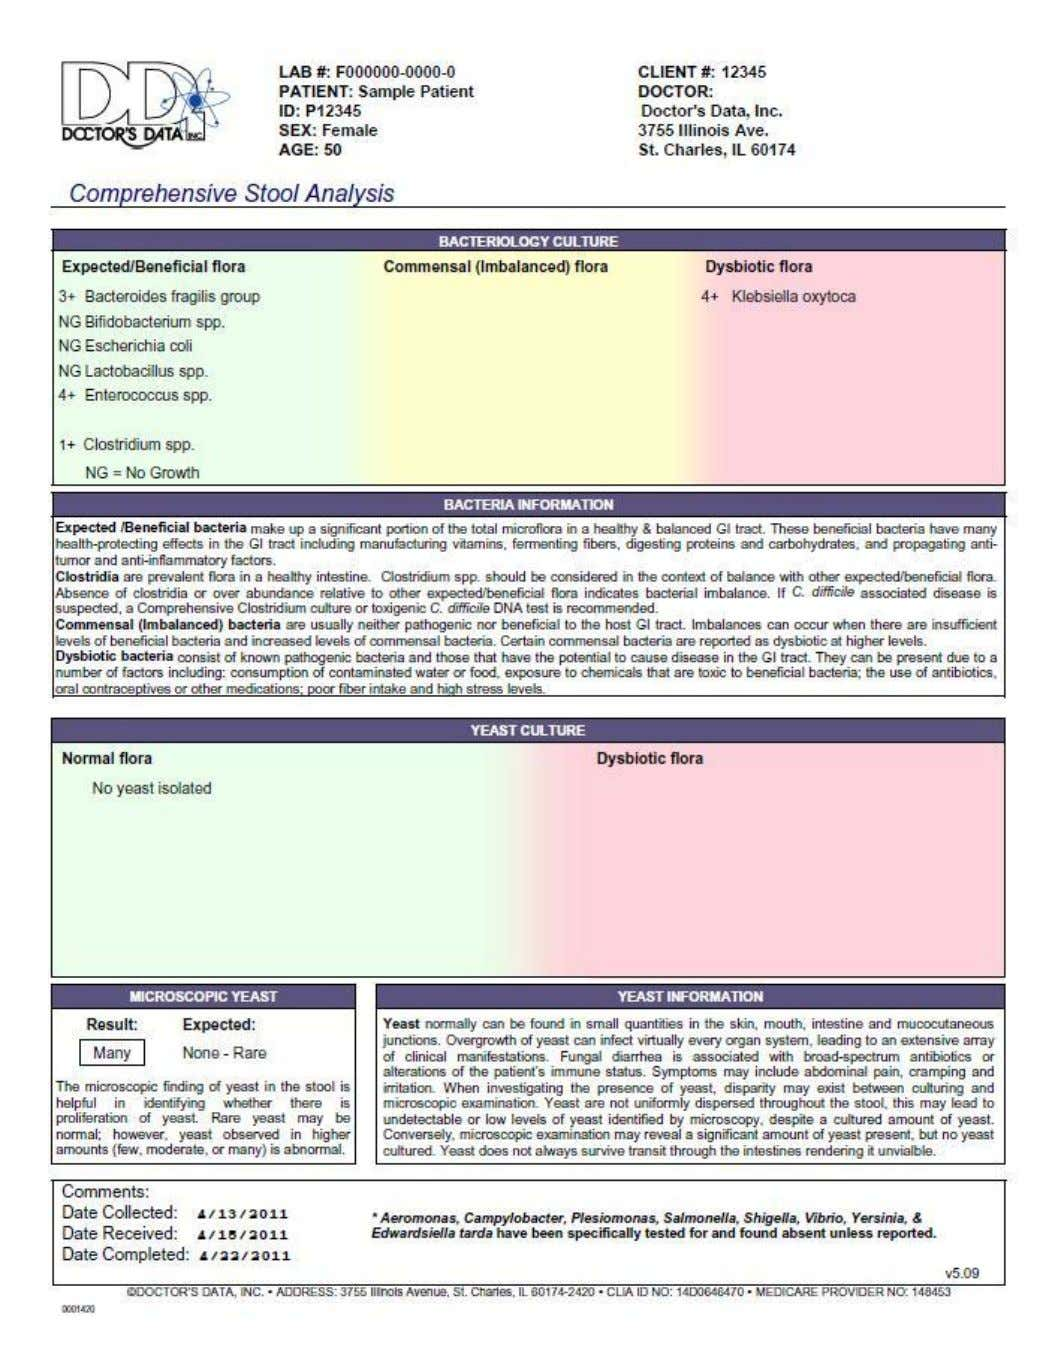 Autism : Pathways to Recovery Workbook Comprehensive Stool Analysis (CSA) example report 53 | P a